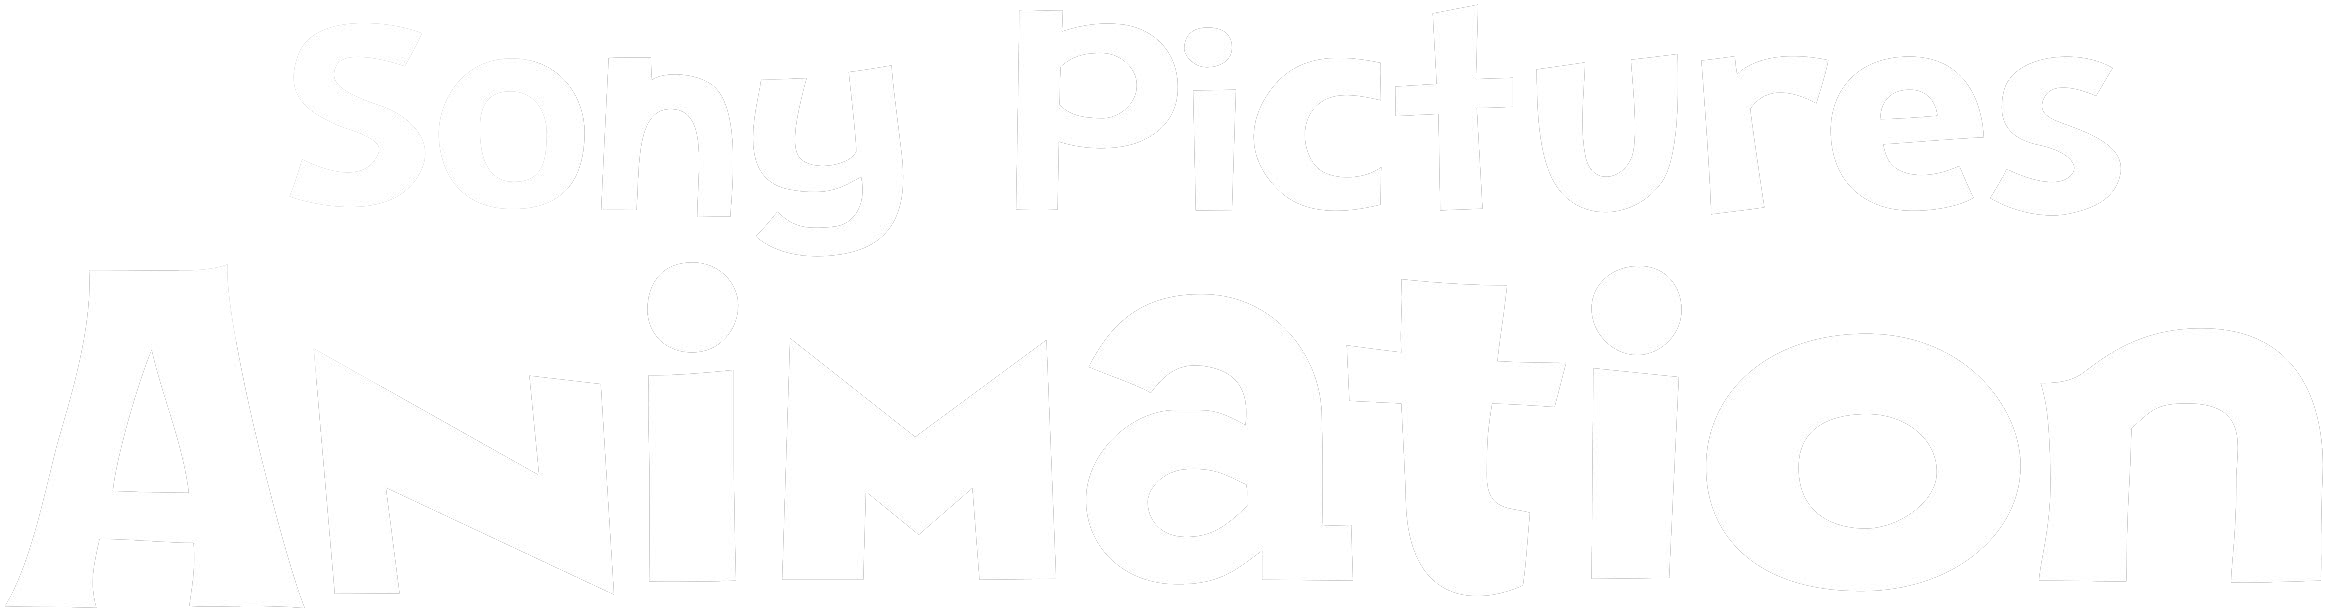 Sony Pictures Animation [logo]